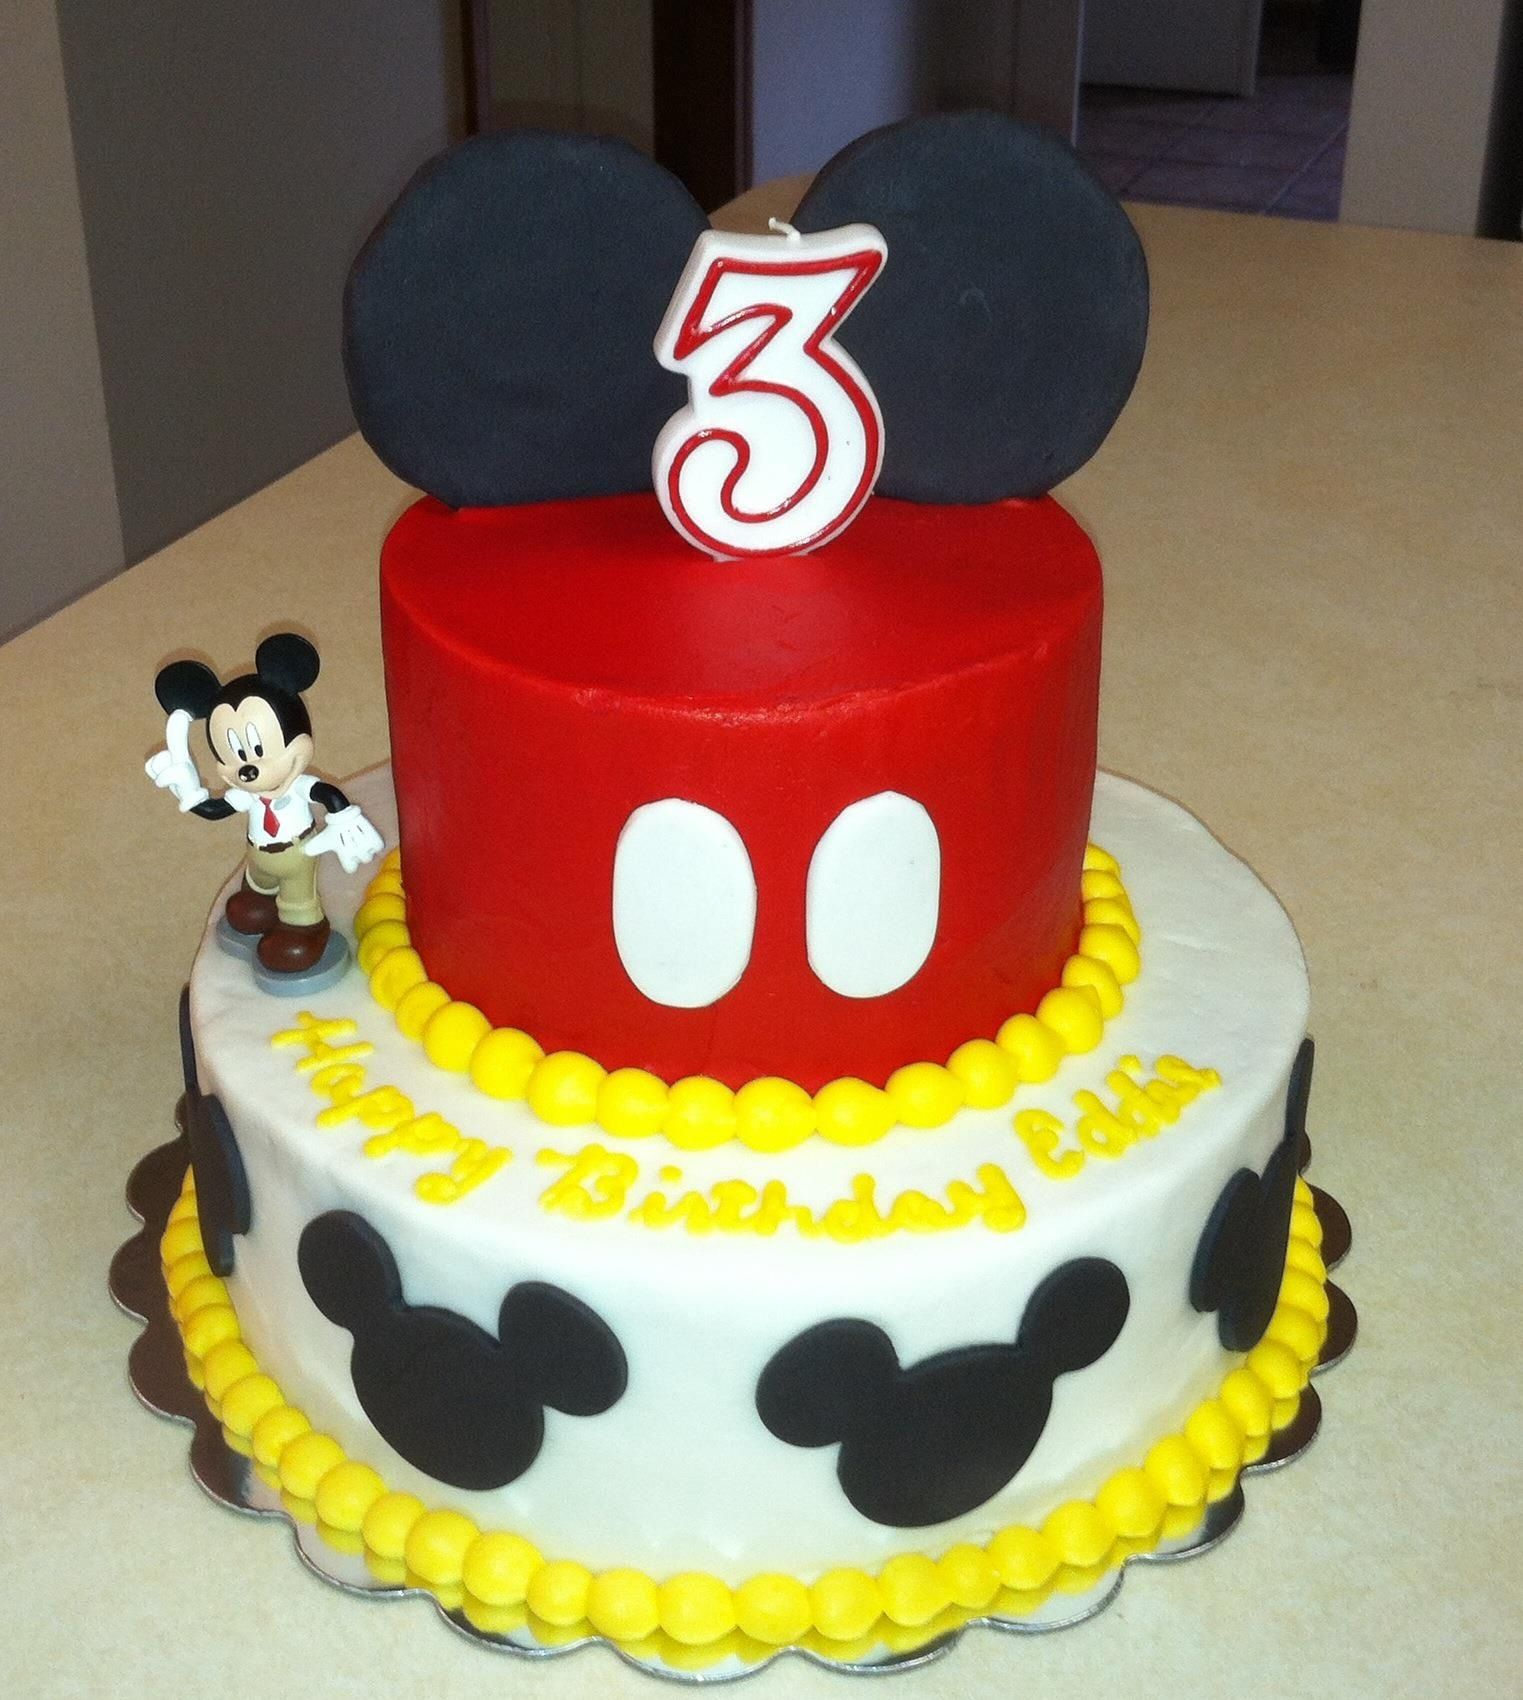 Mickey Mouse Smash Cakes Buttercream: Mickey Mouse Cake. Buttercream Cake With Fondant Accents